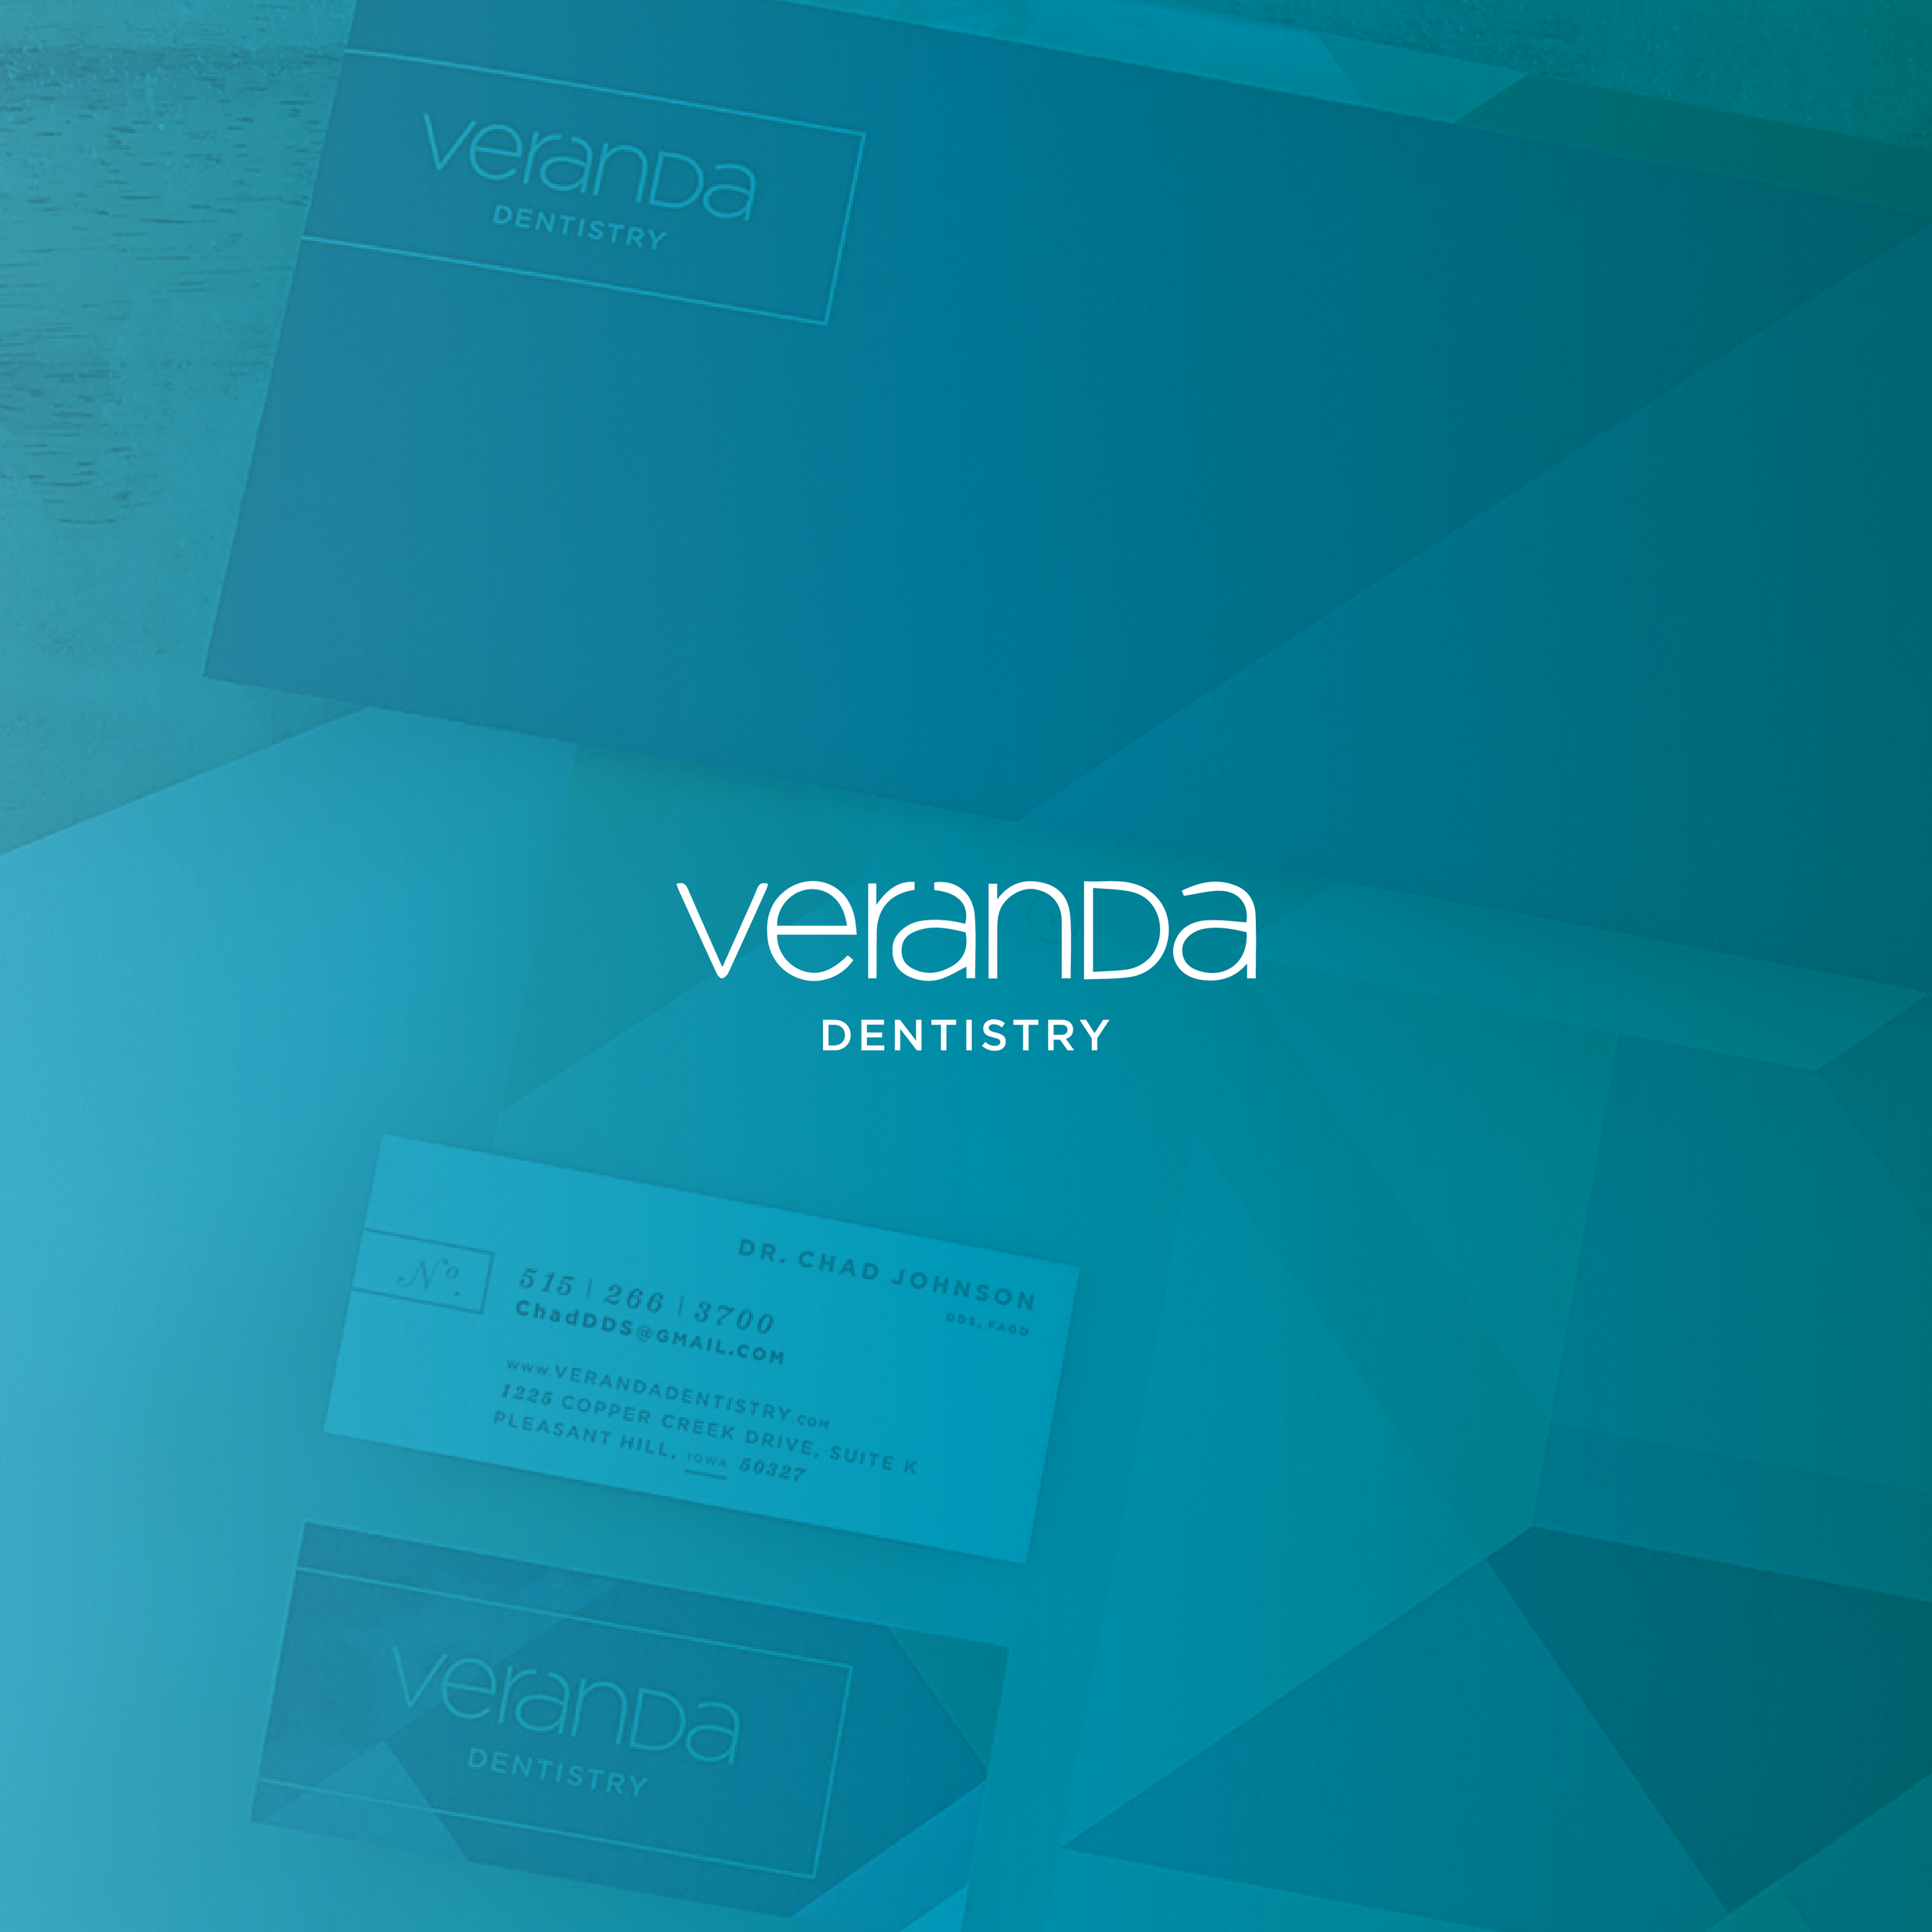 Veranda Stationary System